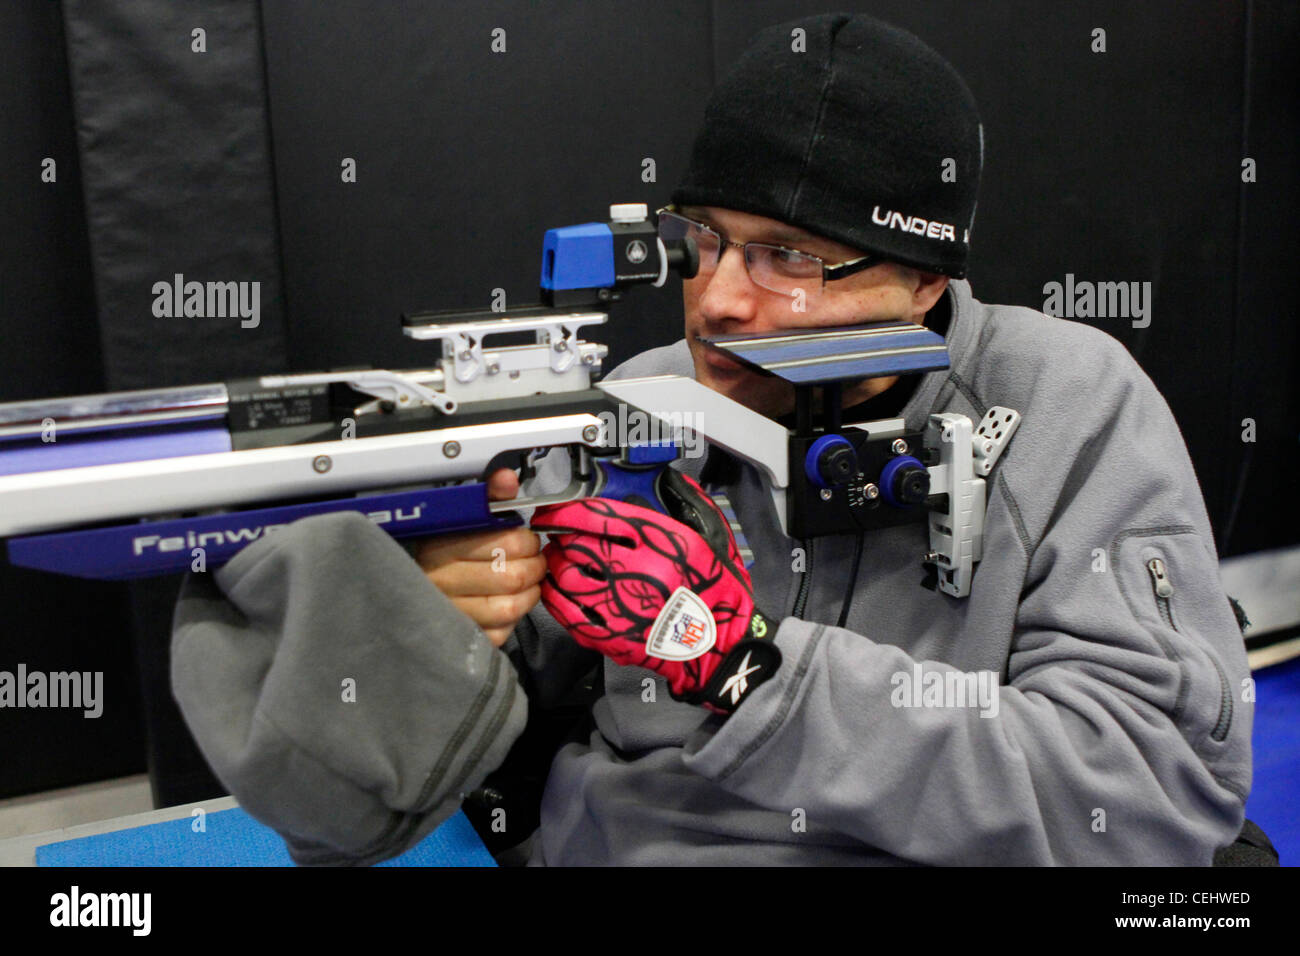 Marine Corps veteran team member Kevin Dewitt of Lexington, Ky., takes aim during air rifle practice at the Marine - Stock Image